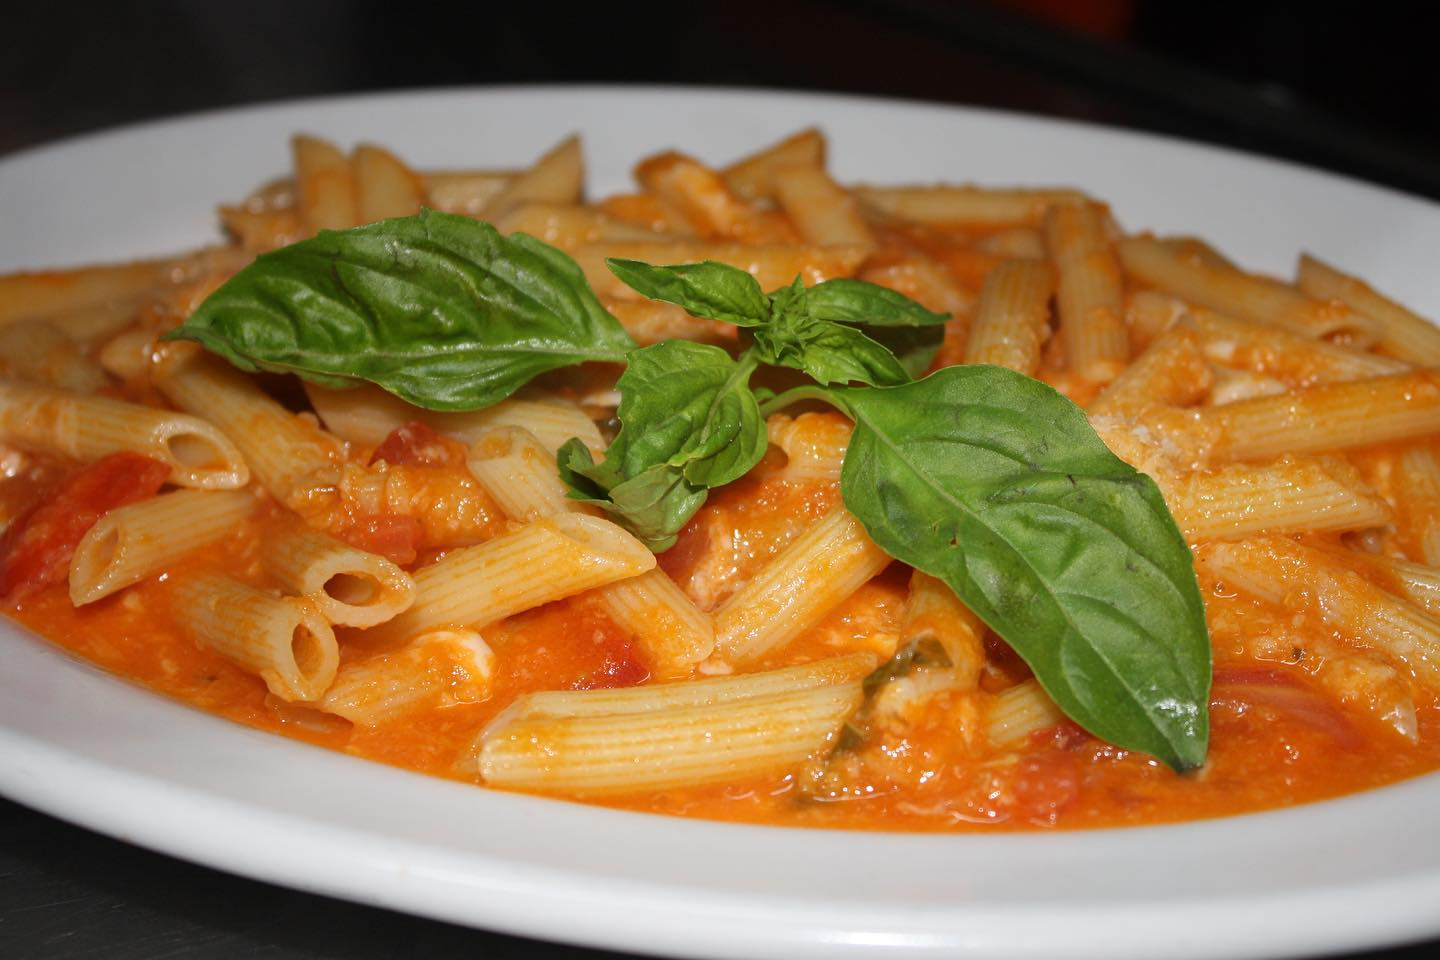 The Penne Dolce at La Dolce in Cabo San Lucas features tomatoes, parmesan, mozza and basil.